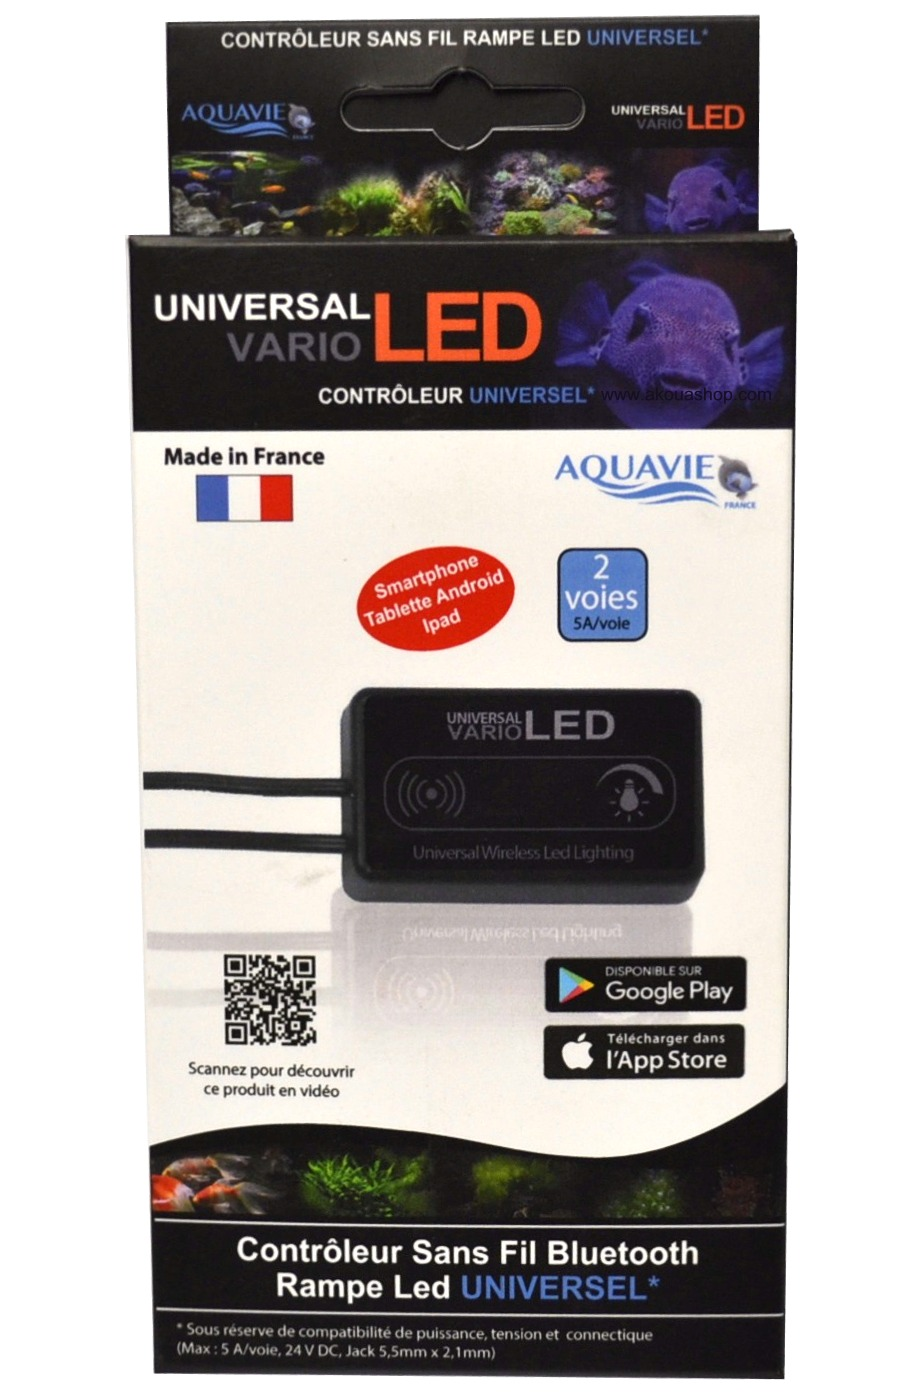 aquavie-vario-led-controleur-universel-bluetooth-pour-rampe-leds-aquarium-12v-24v-akouashop